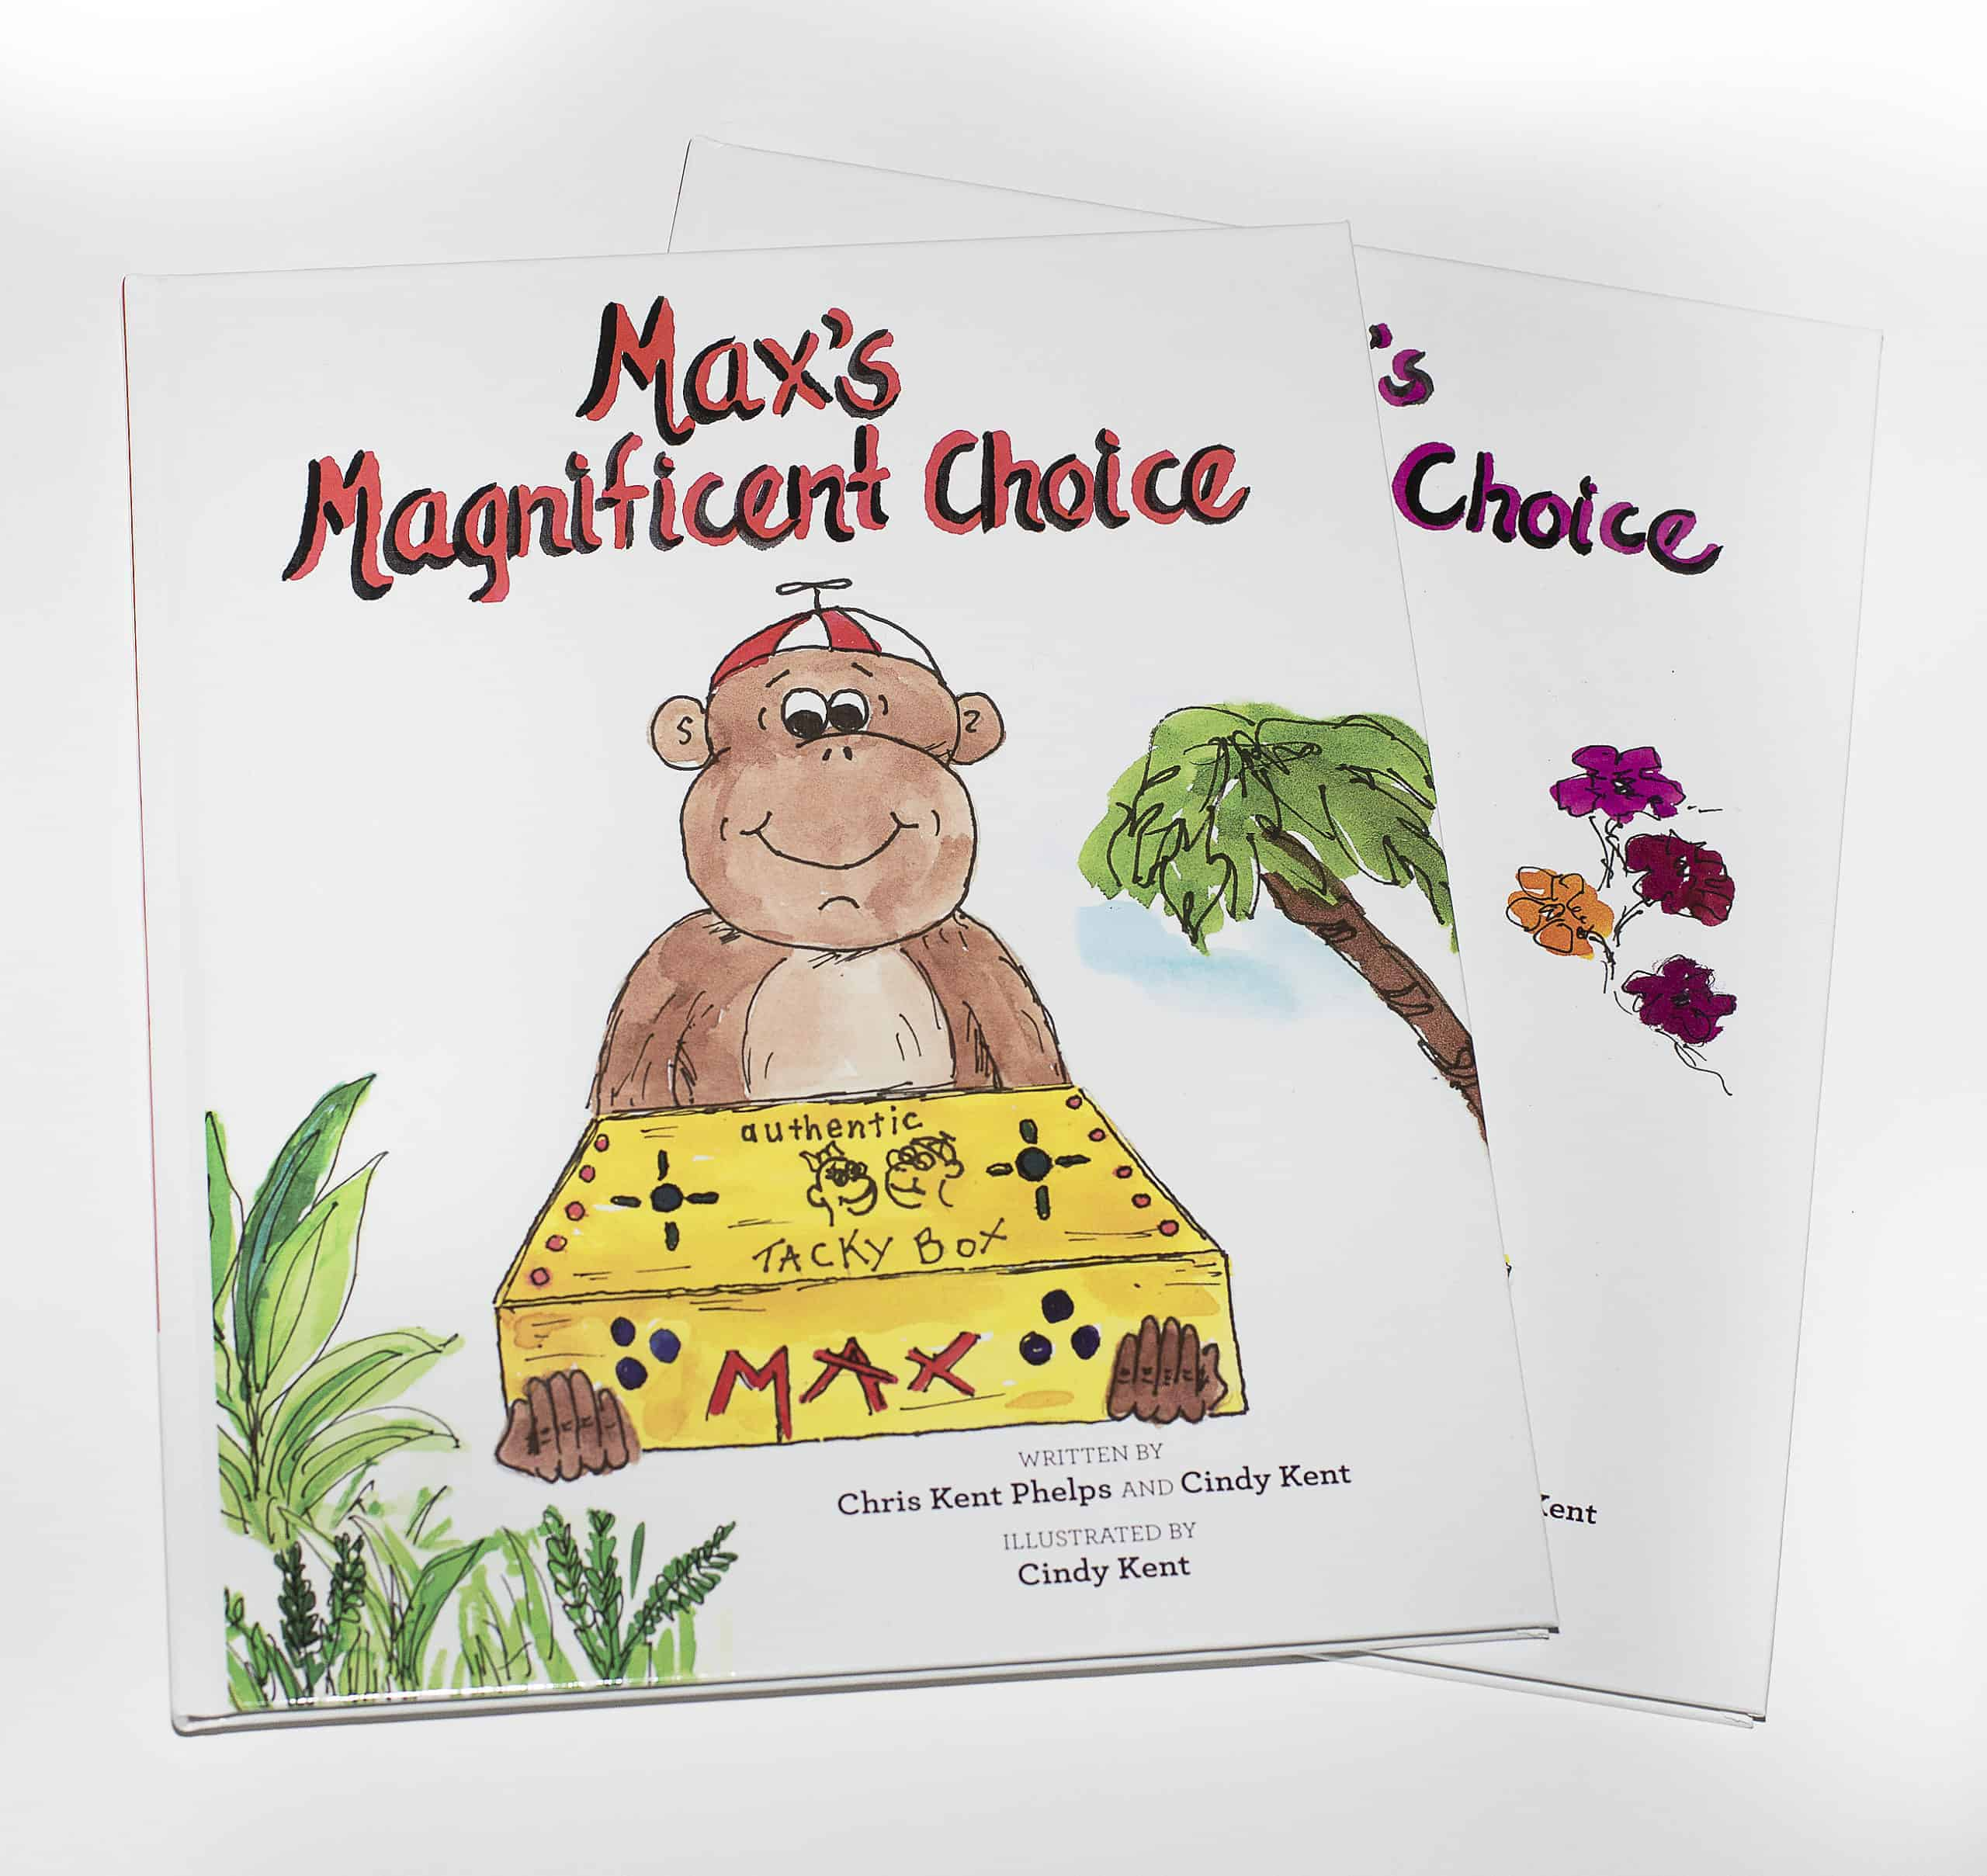 Max's magnificent choice